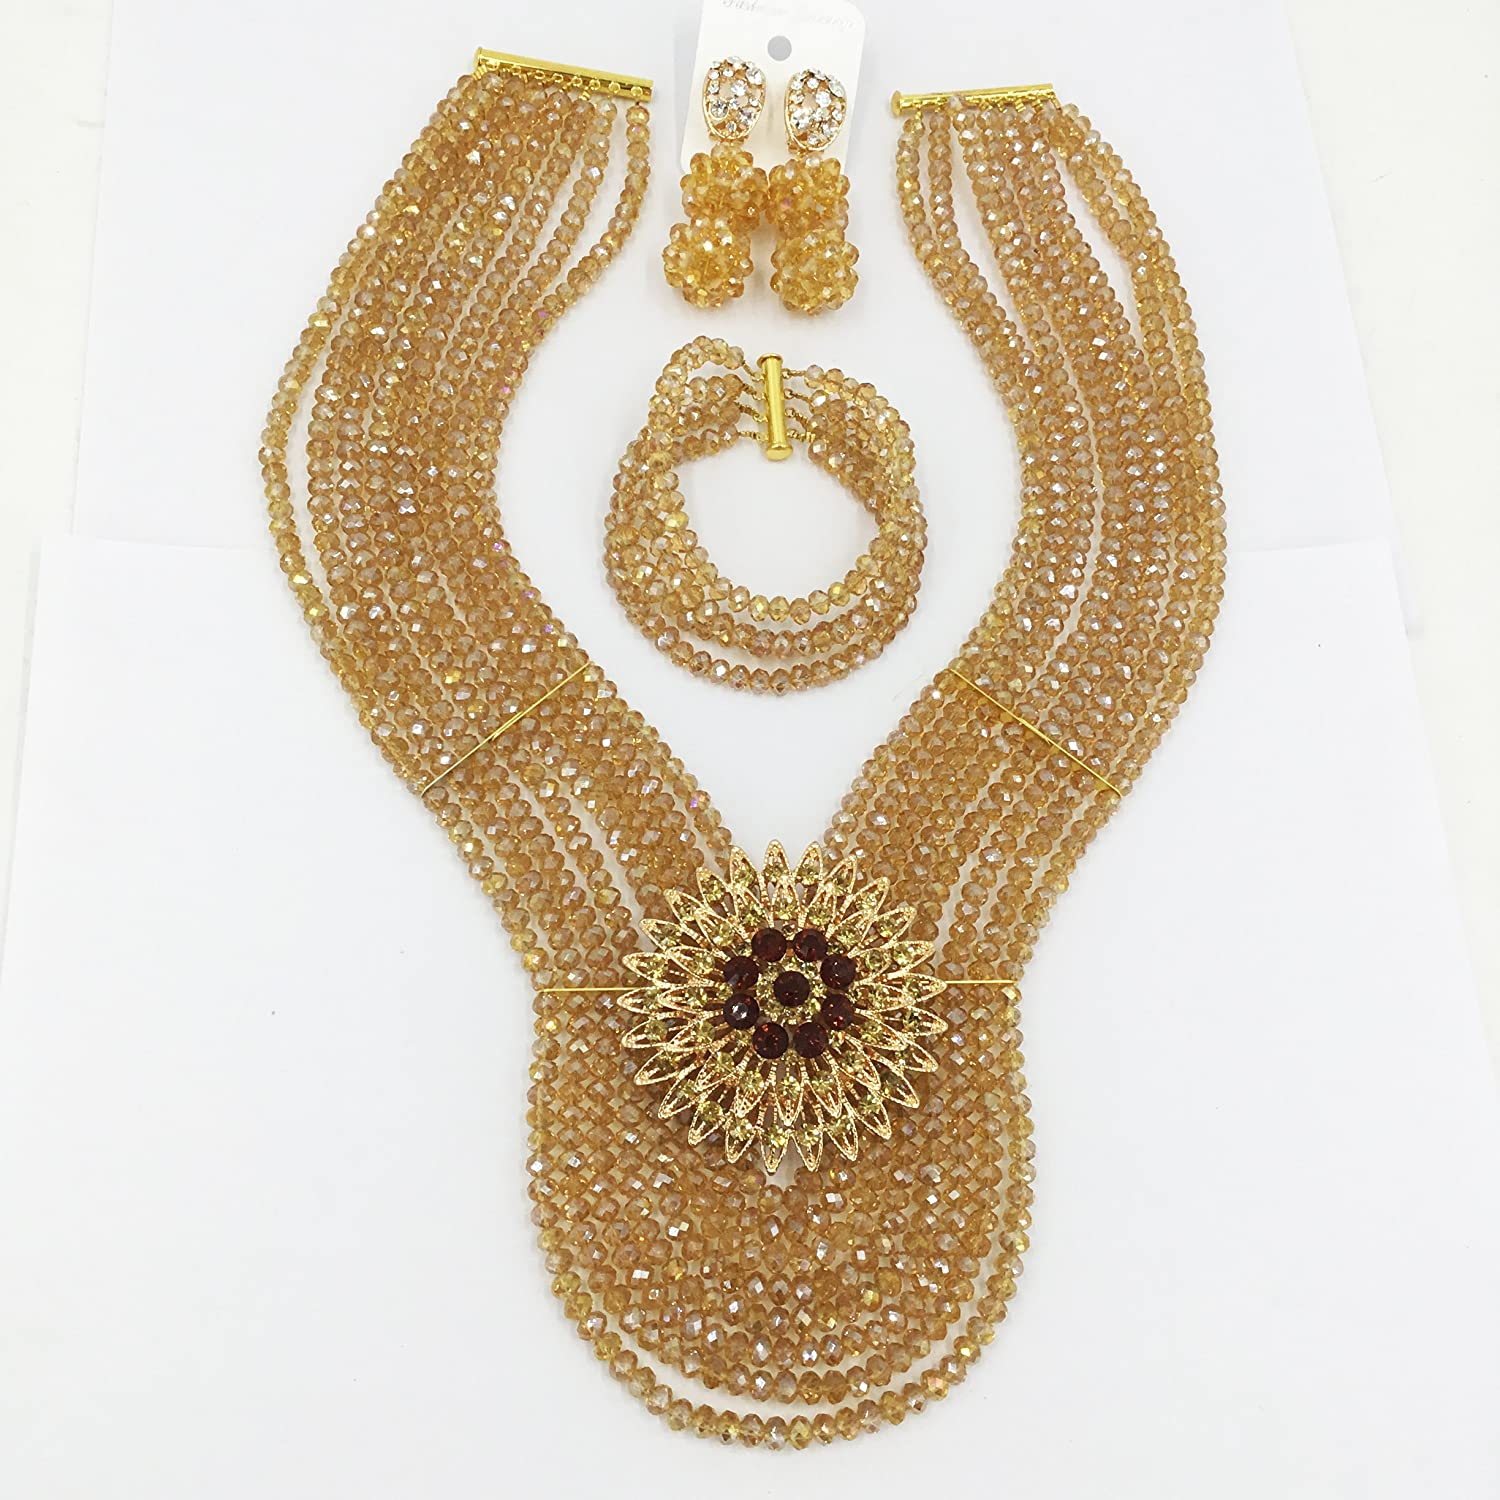 aczuv Red Nigerian Wedding African Beads Jewelry Set Crystal Necklace and Earrings for Women